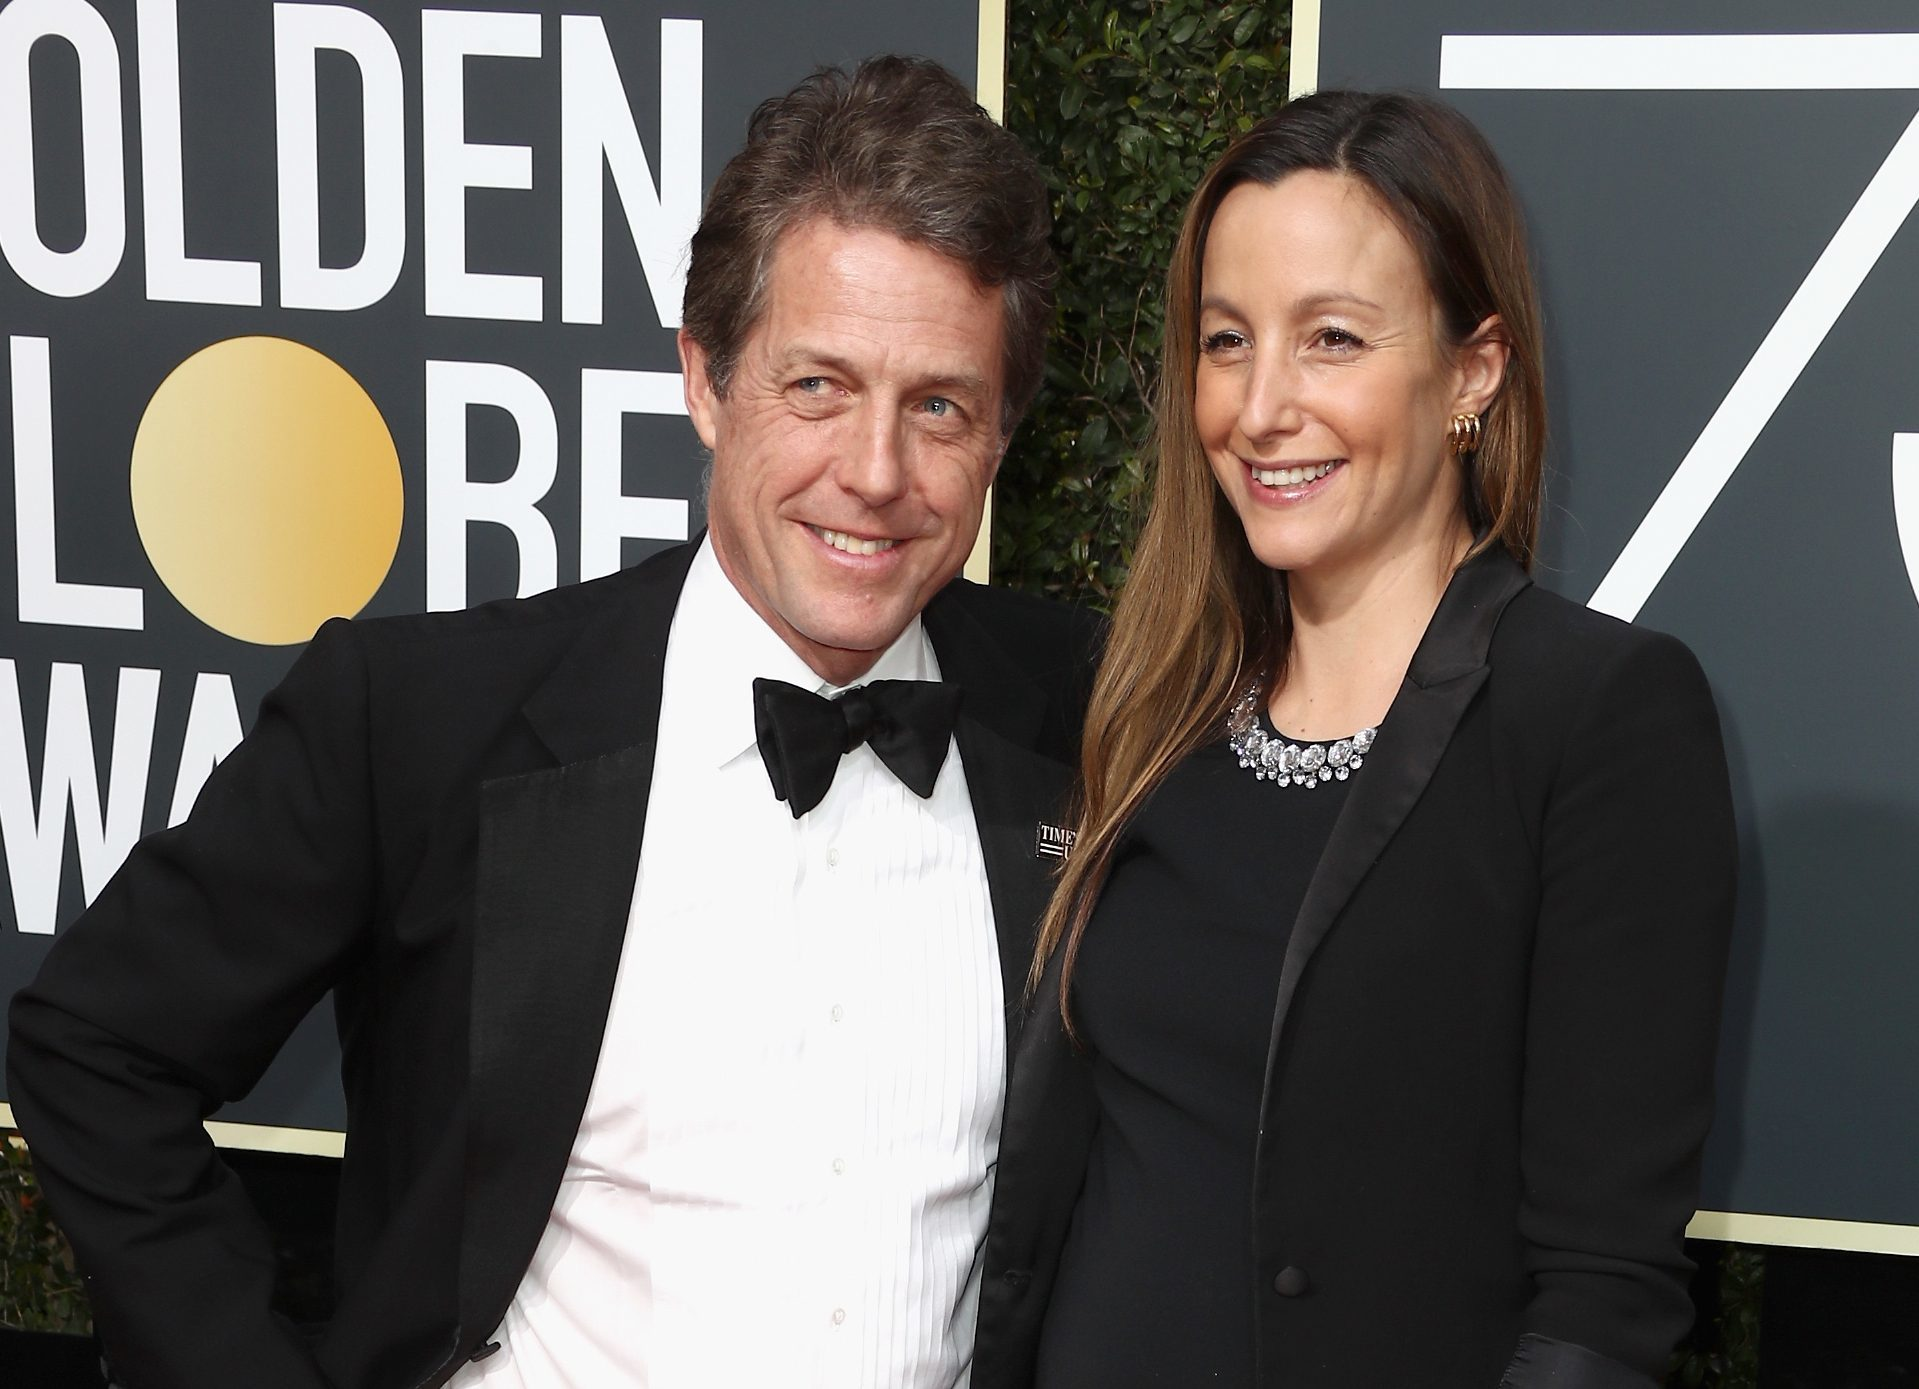 Hugh Grant and Anna Eberstein attend The 75th Annual Golden Globe Awards (Frederick M. Brown/Getty Images)